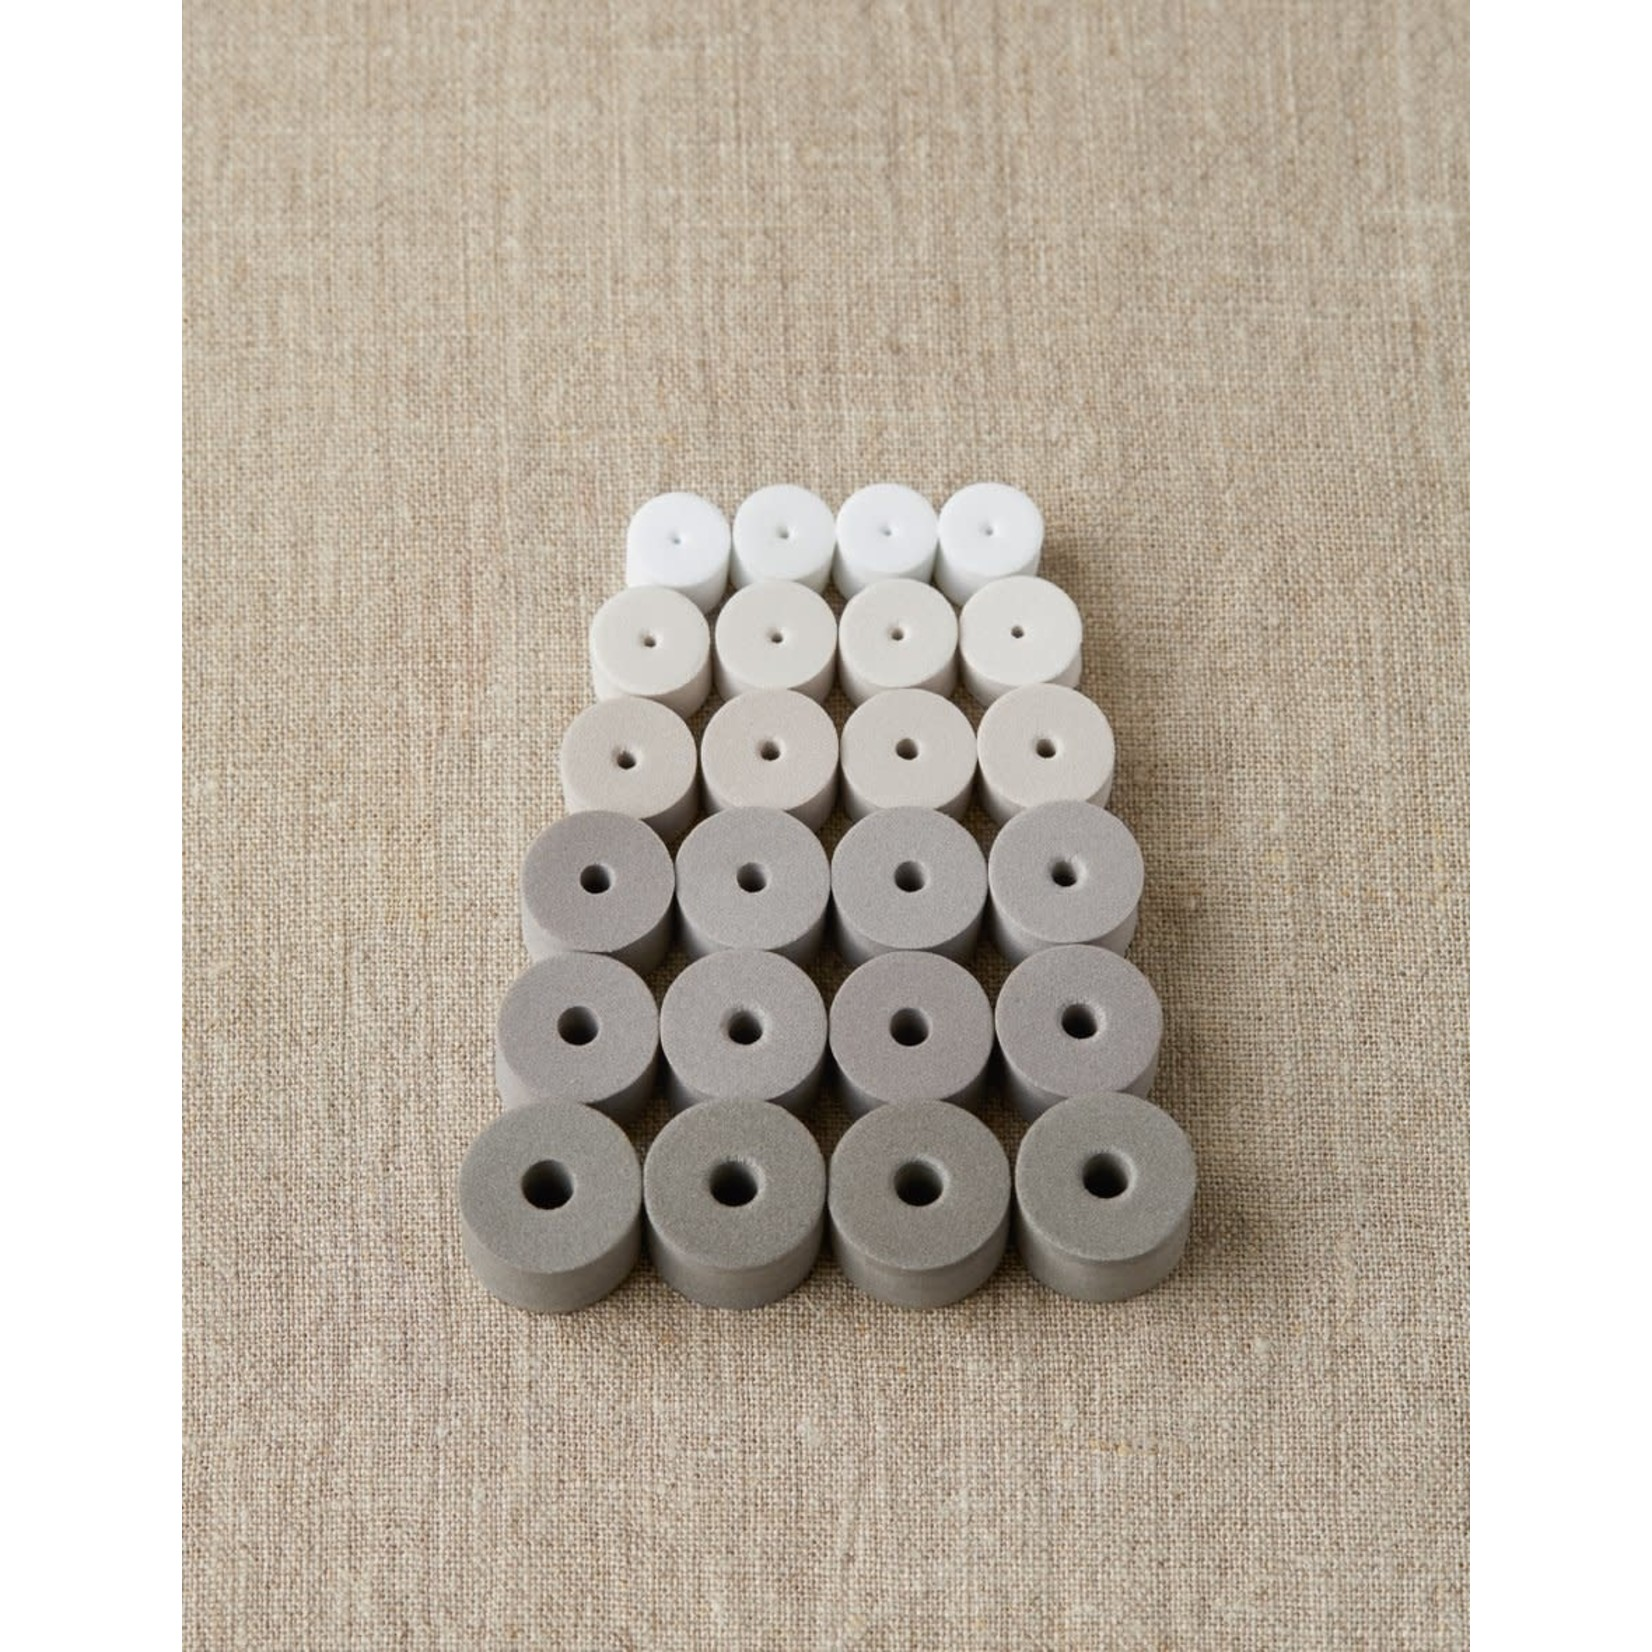 Cocoknits Cocoknits Neutral Stitch Stoppers